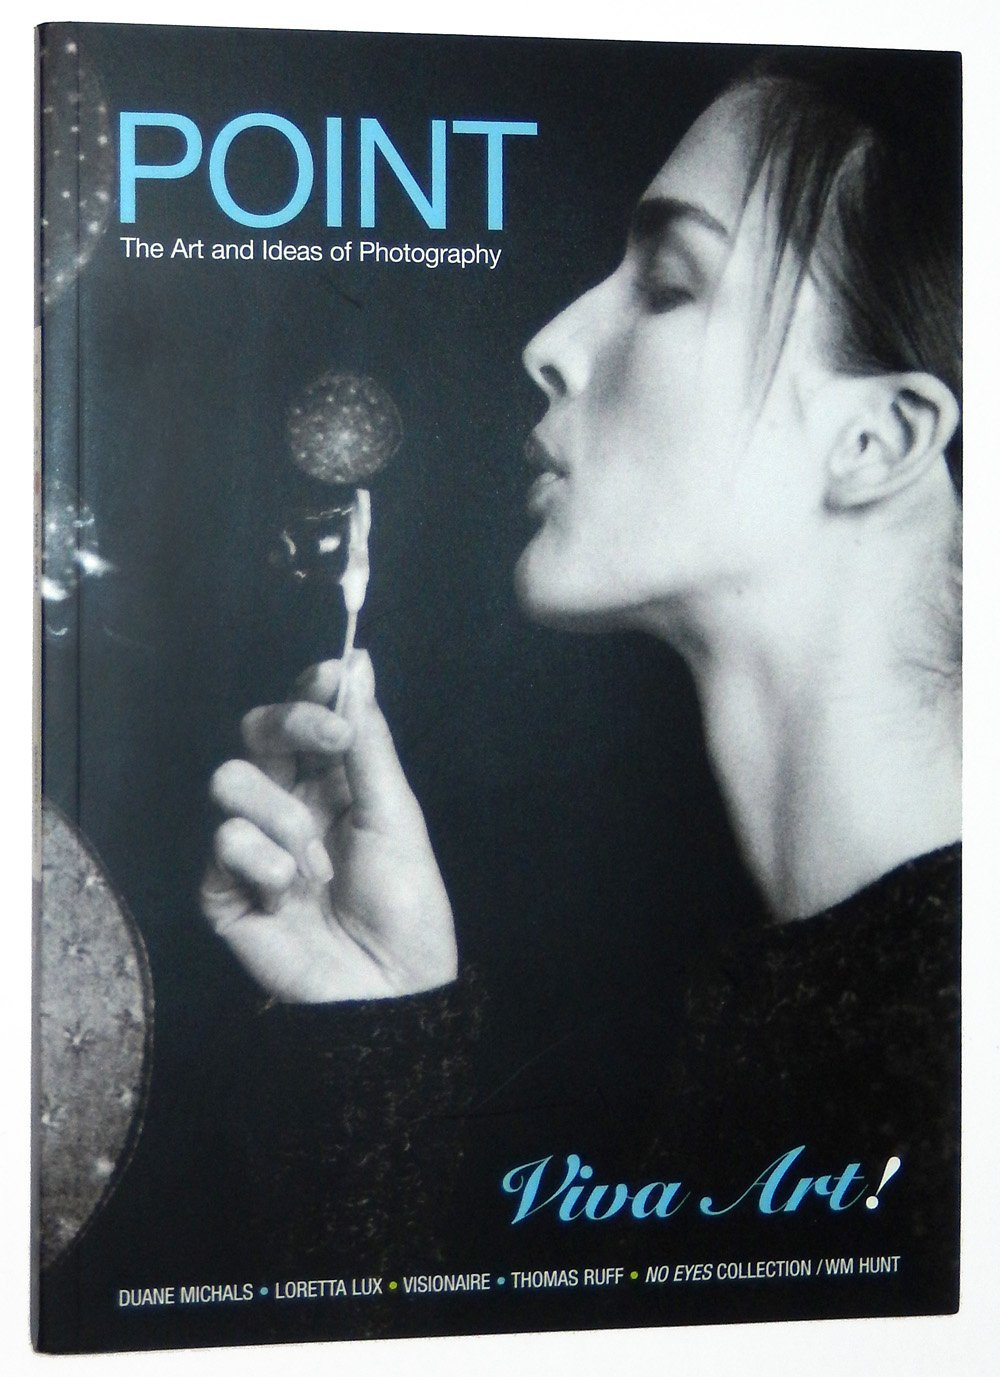 point magazine the art and ideas of photography vol 1 no 1 winter 2005 2006 viva art